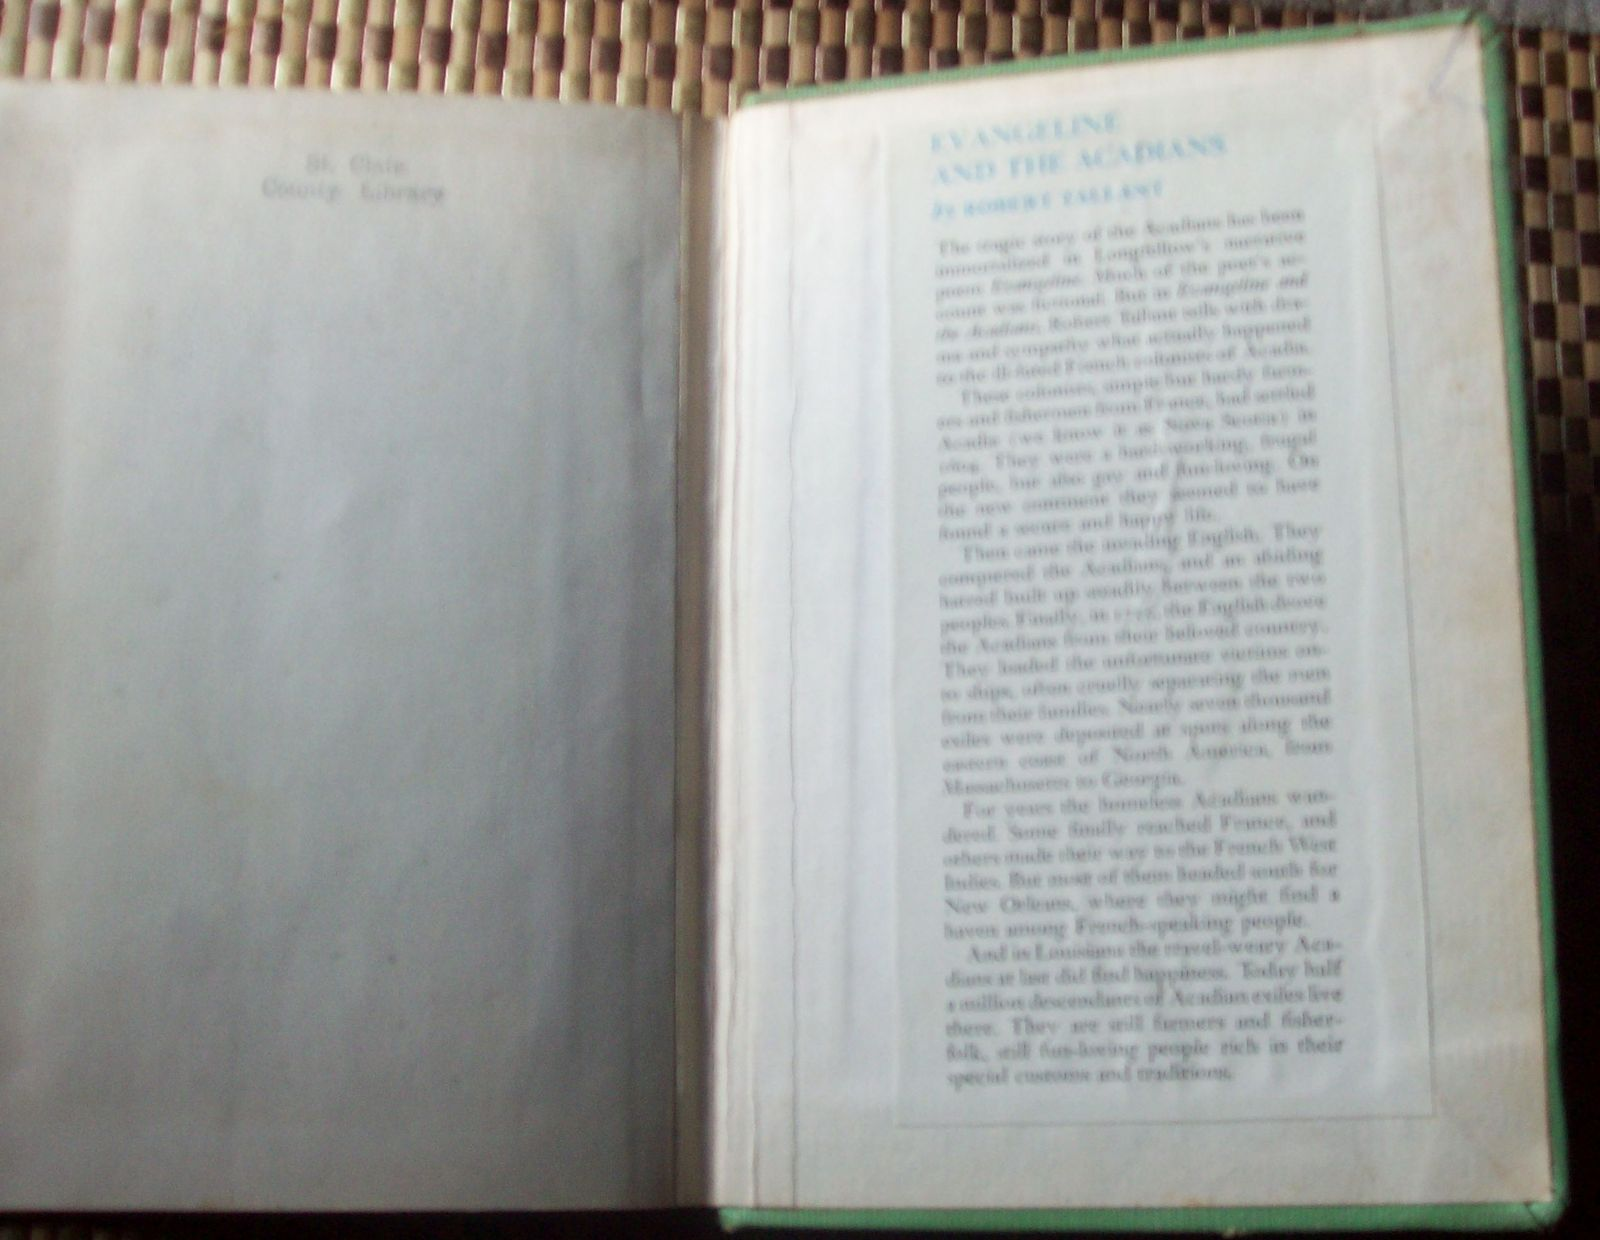 Evangeline and the Acadians by Robert Tallant 1957 HB